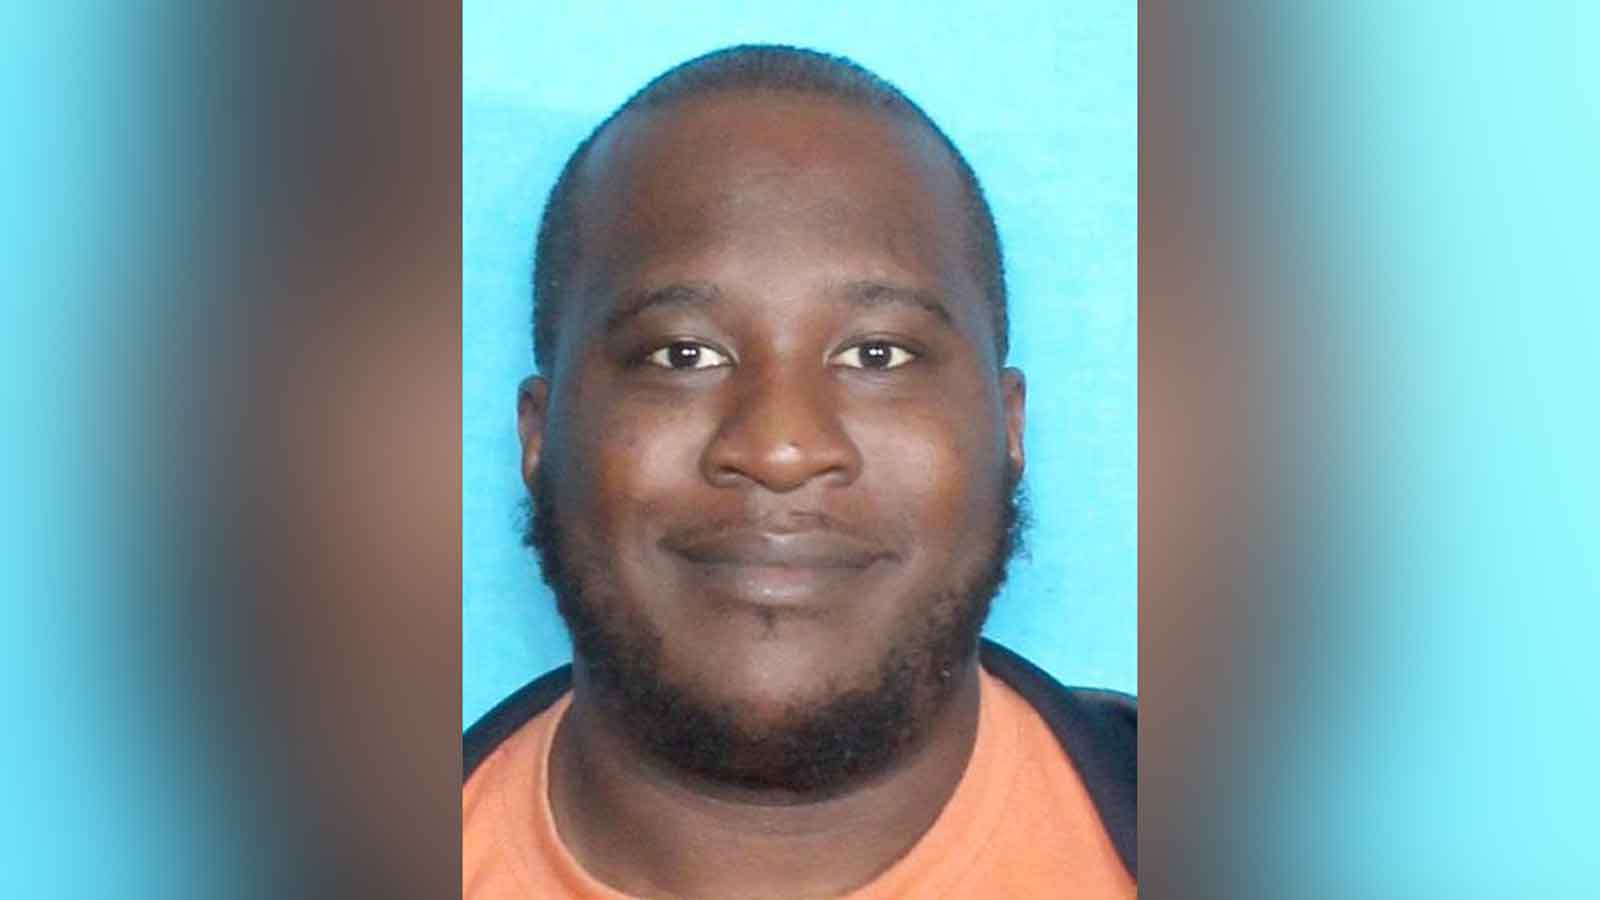 A Louisiana man was charged with terrorism after allegedly driving a vehicle into a Target